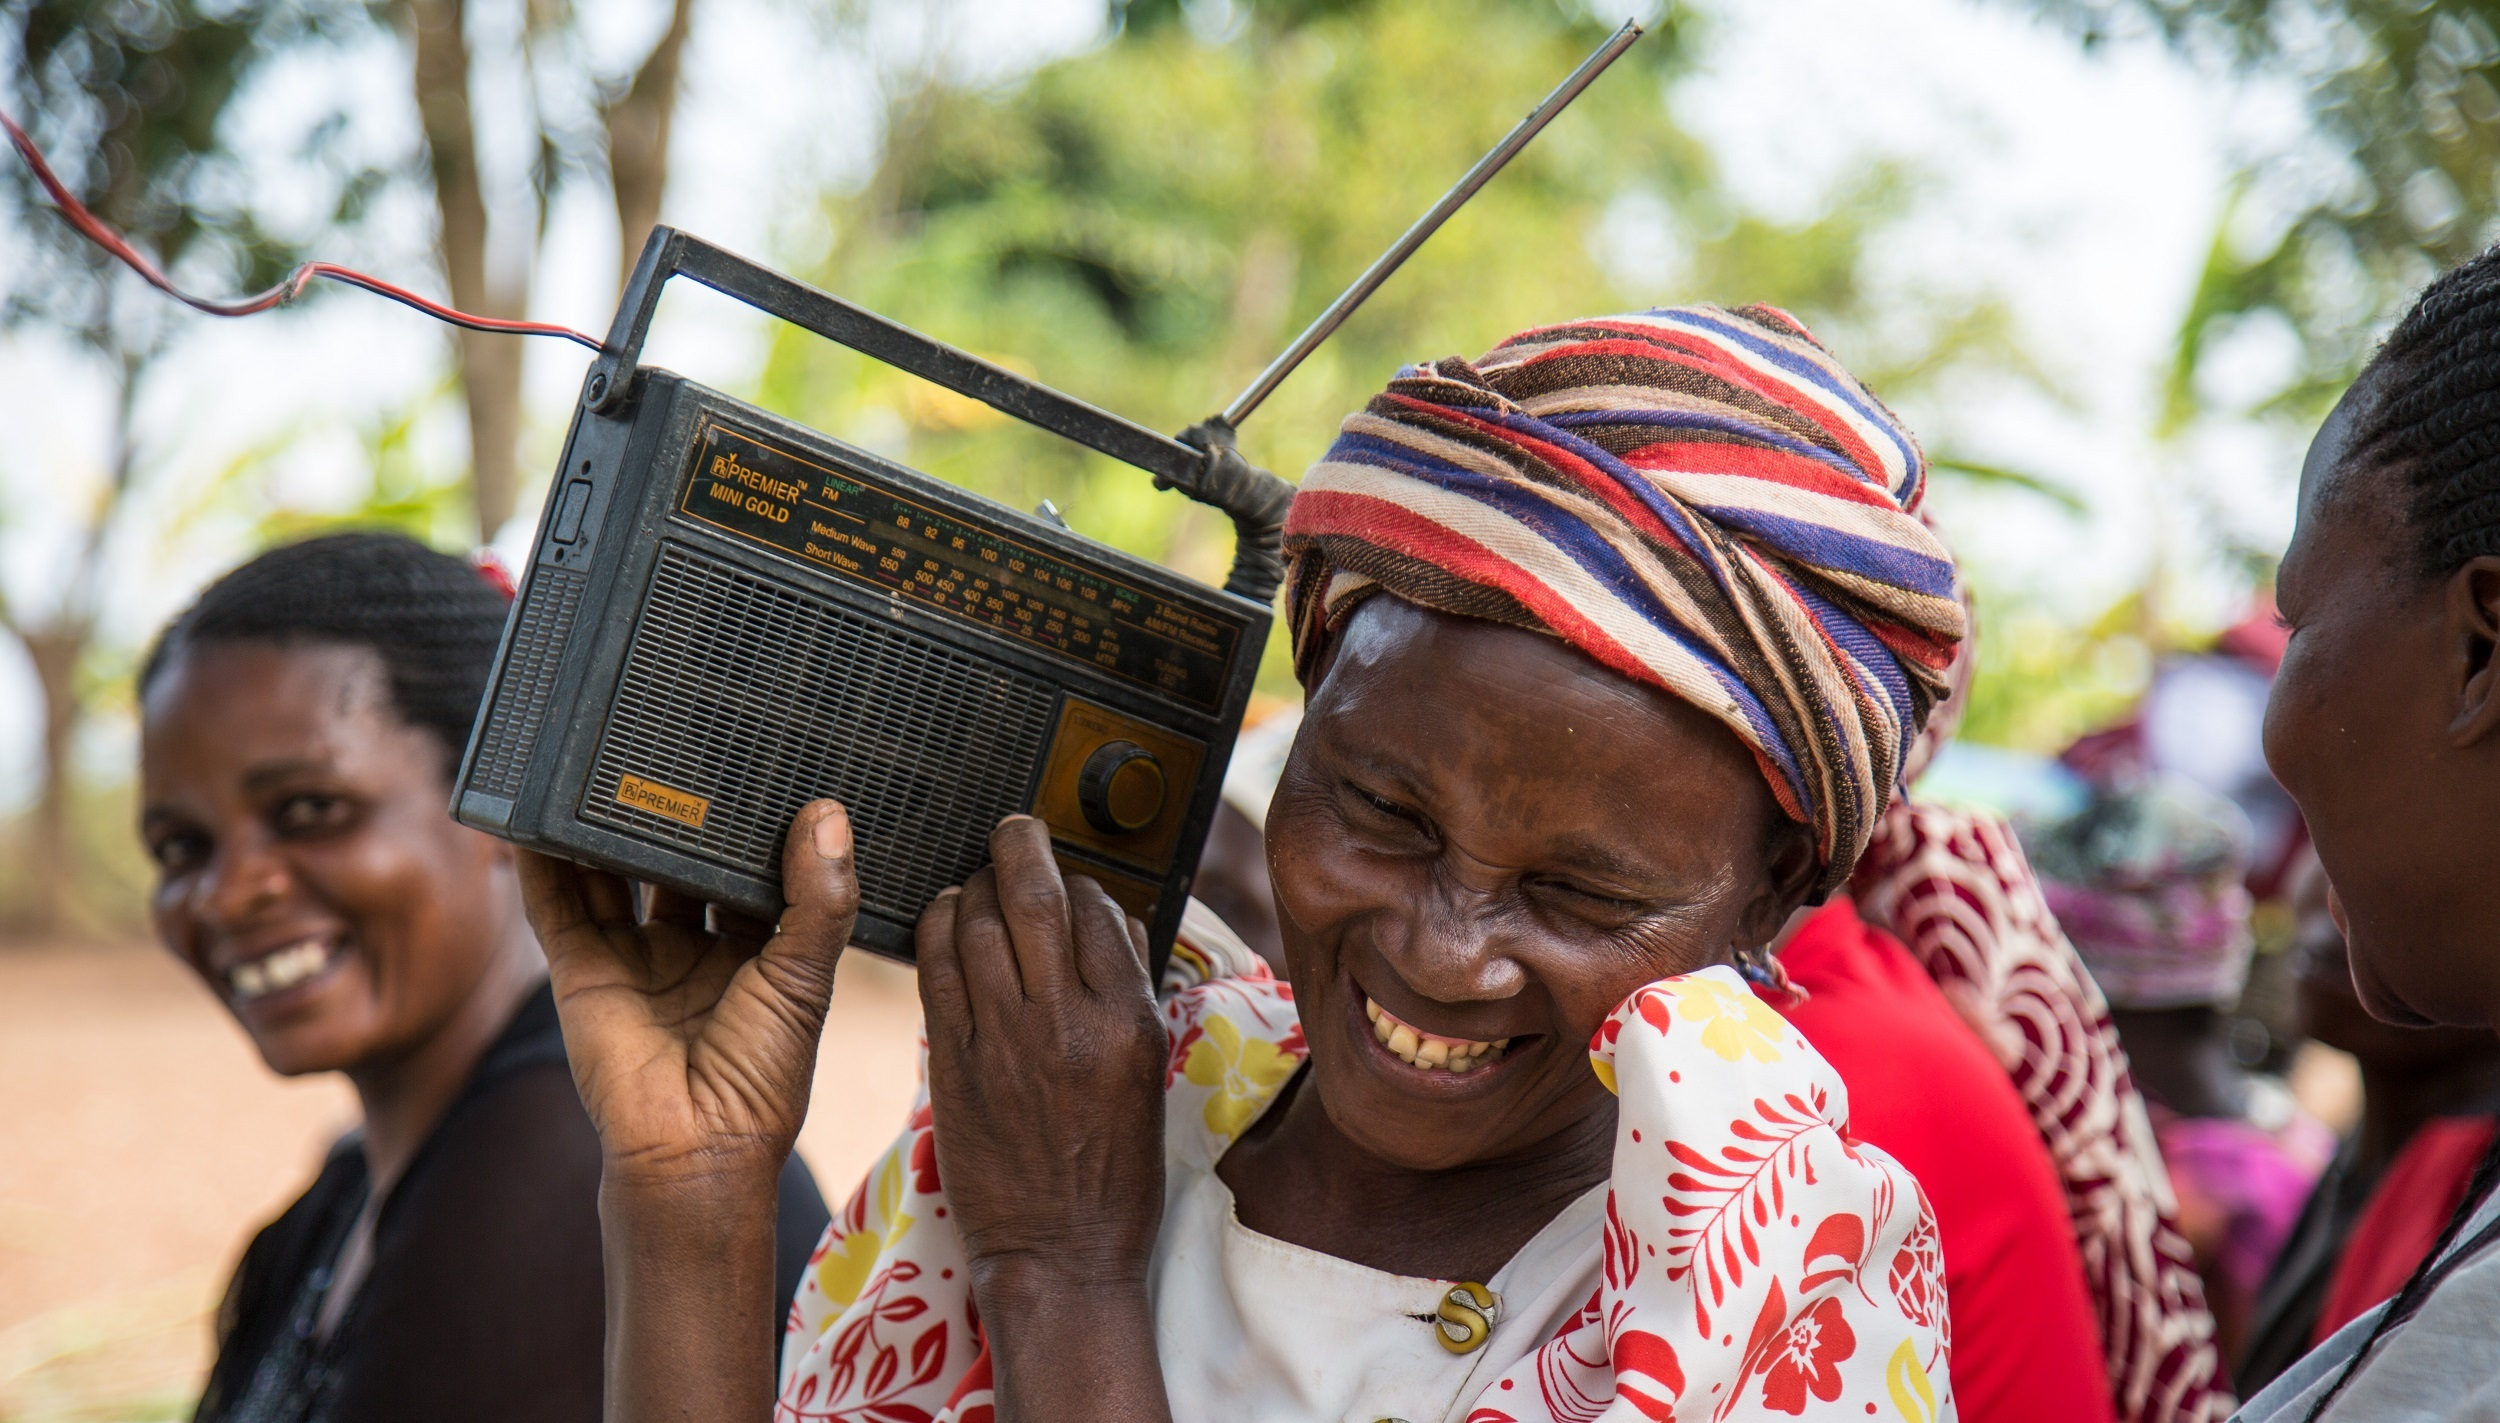 A lady holding a radio up to her ear, smiling